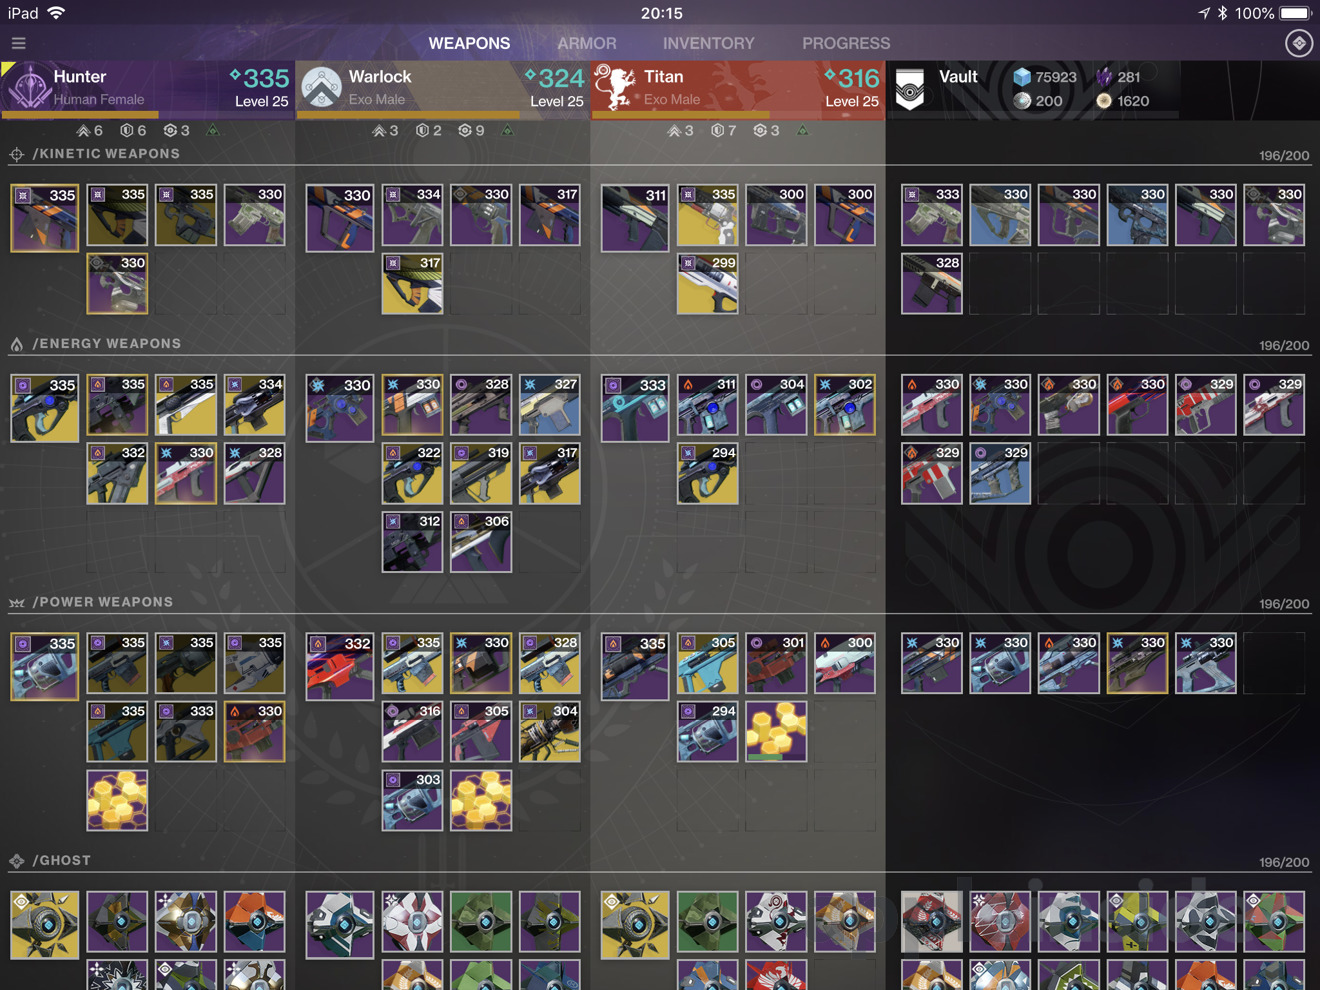 Hands On: Manage your gear in 'Destiny 2' with Ishtar Commander for iPad